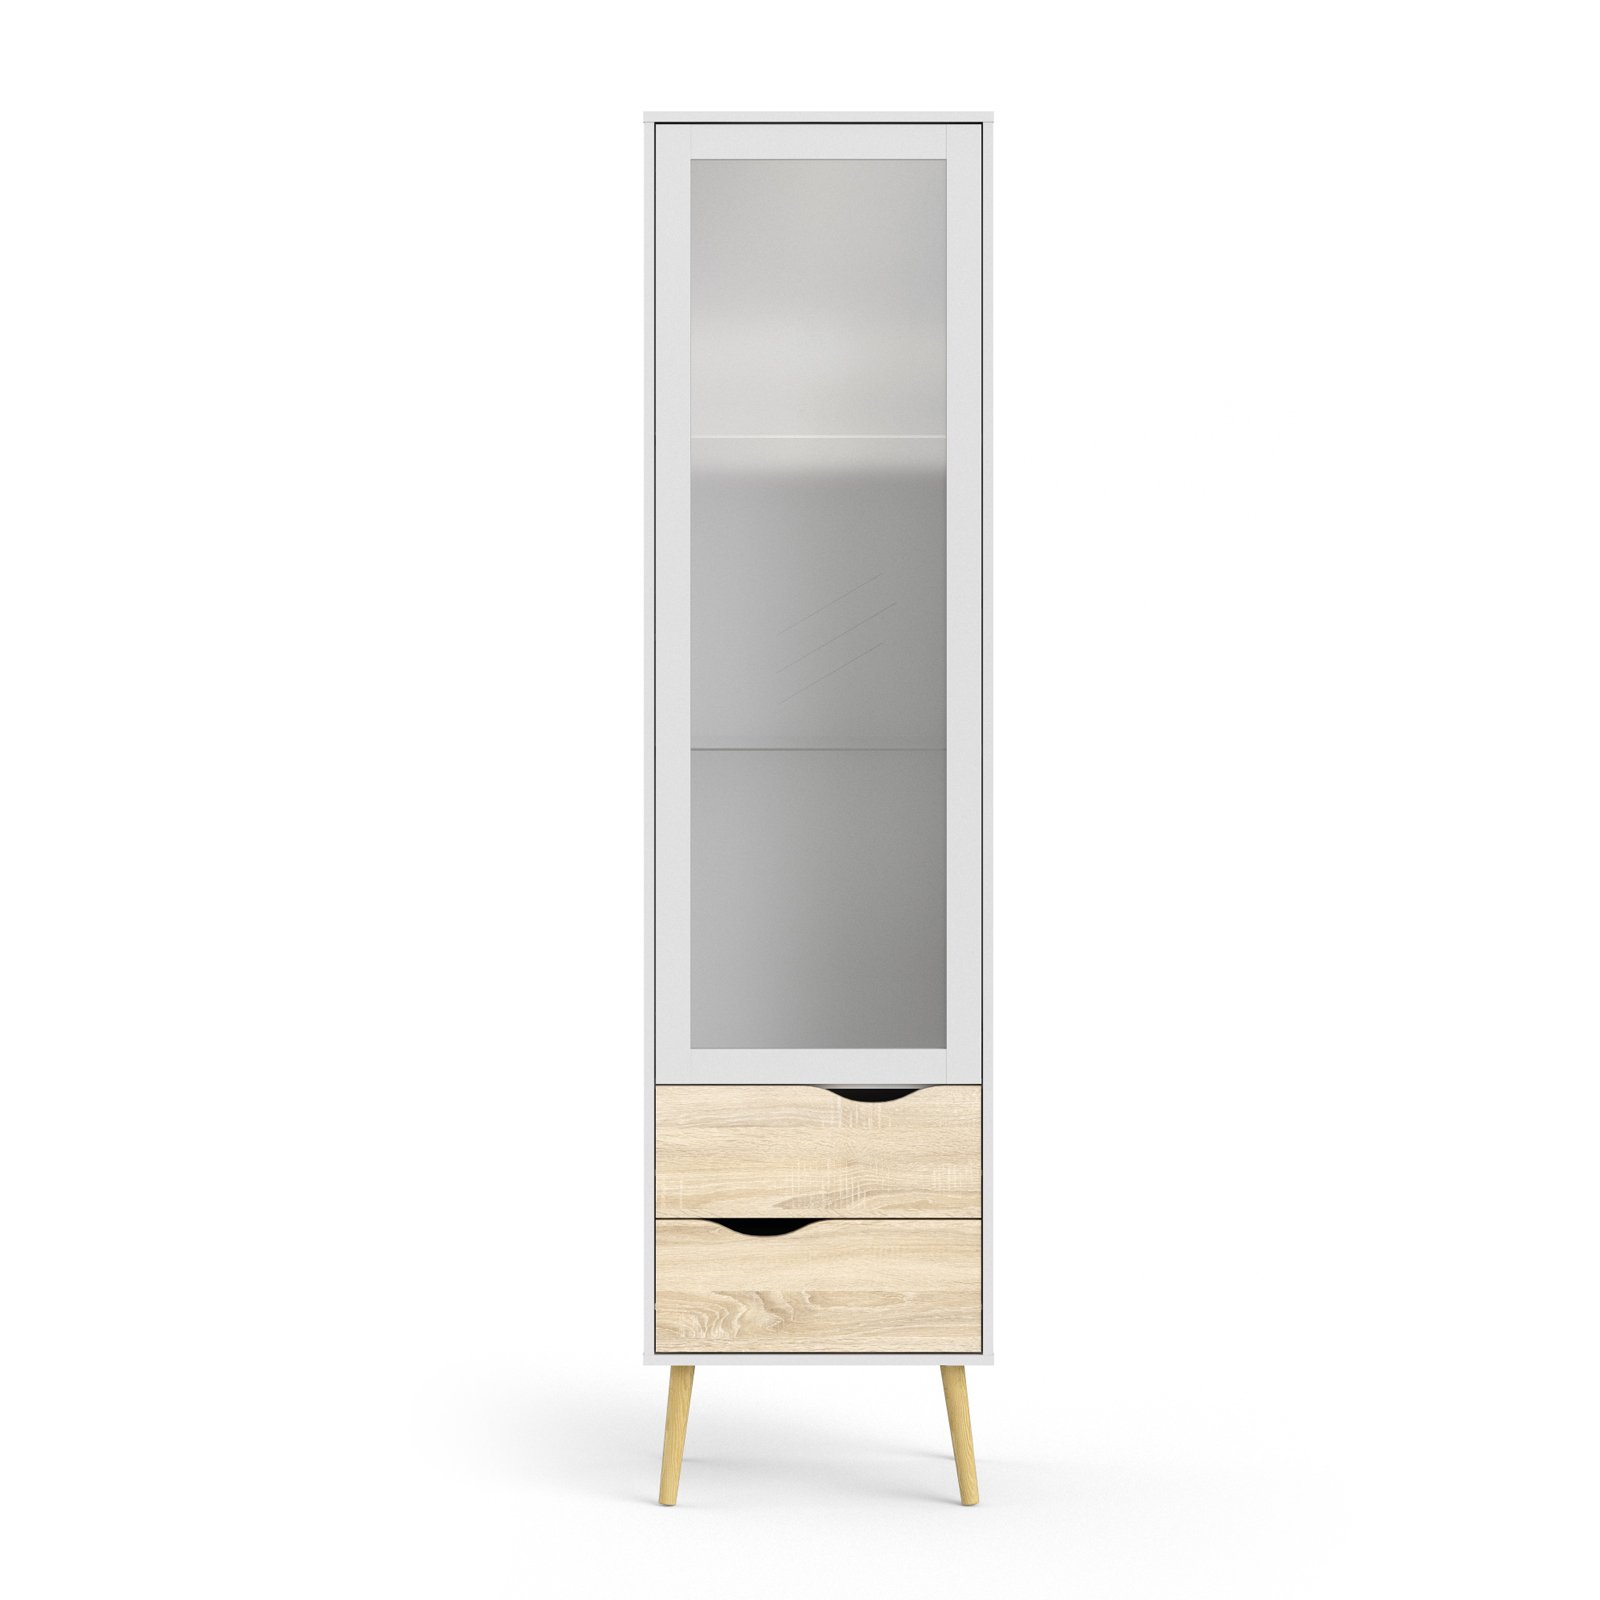 Tvilum Diana 2 Drawer China Cabinet with Glass Door by Tvilum